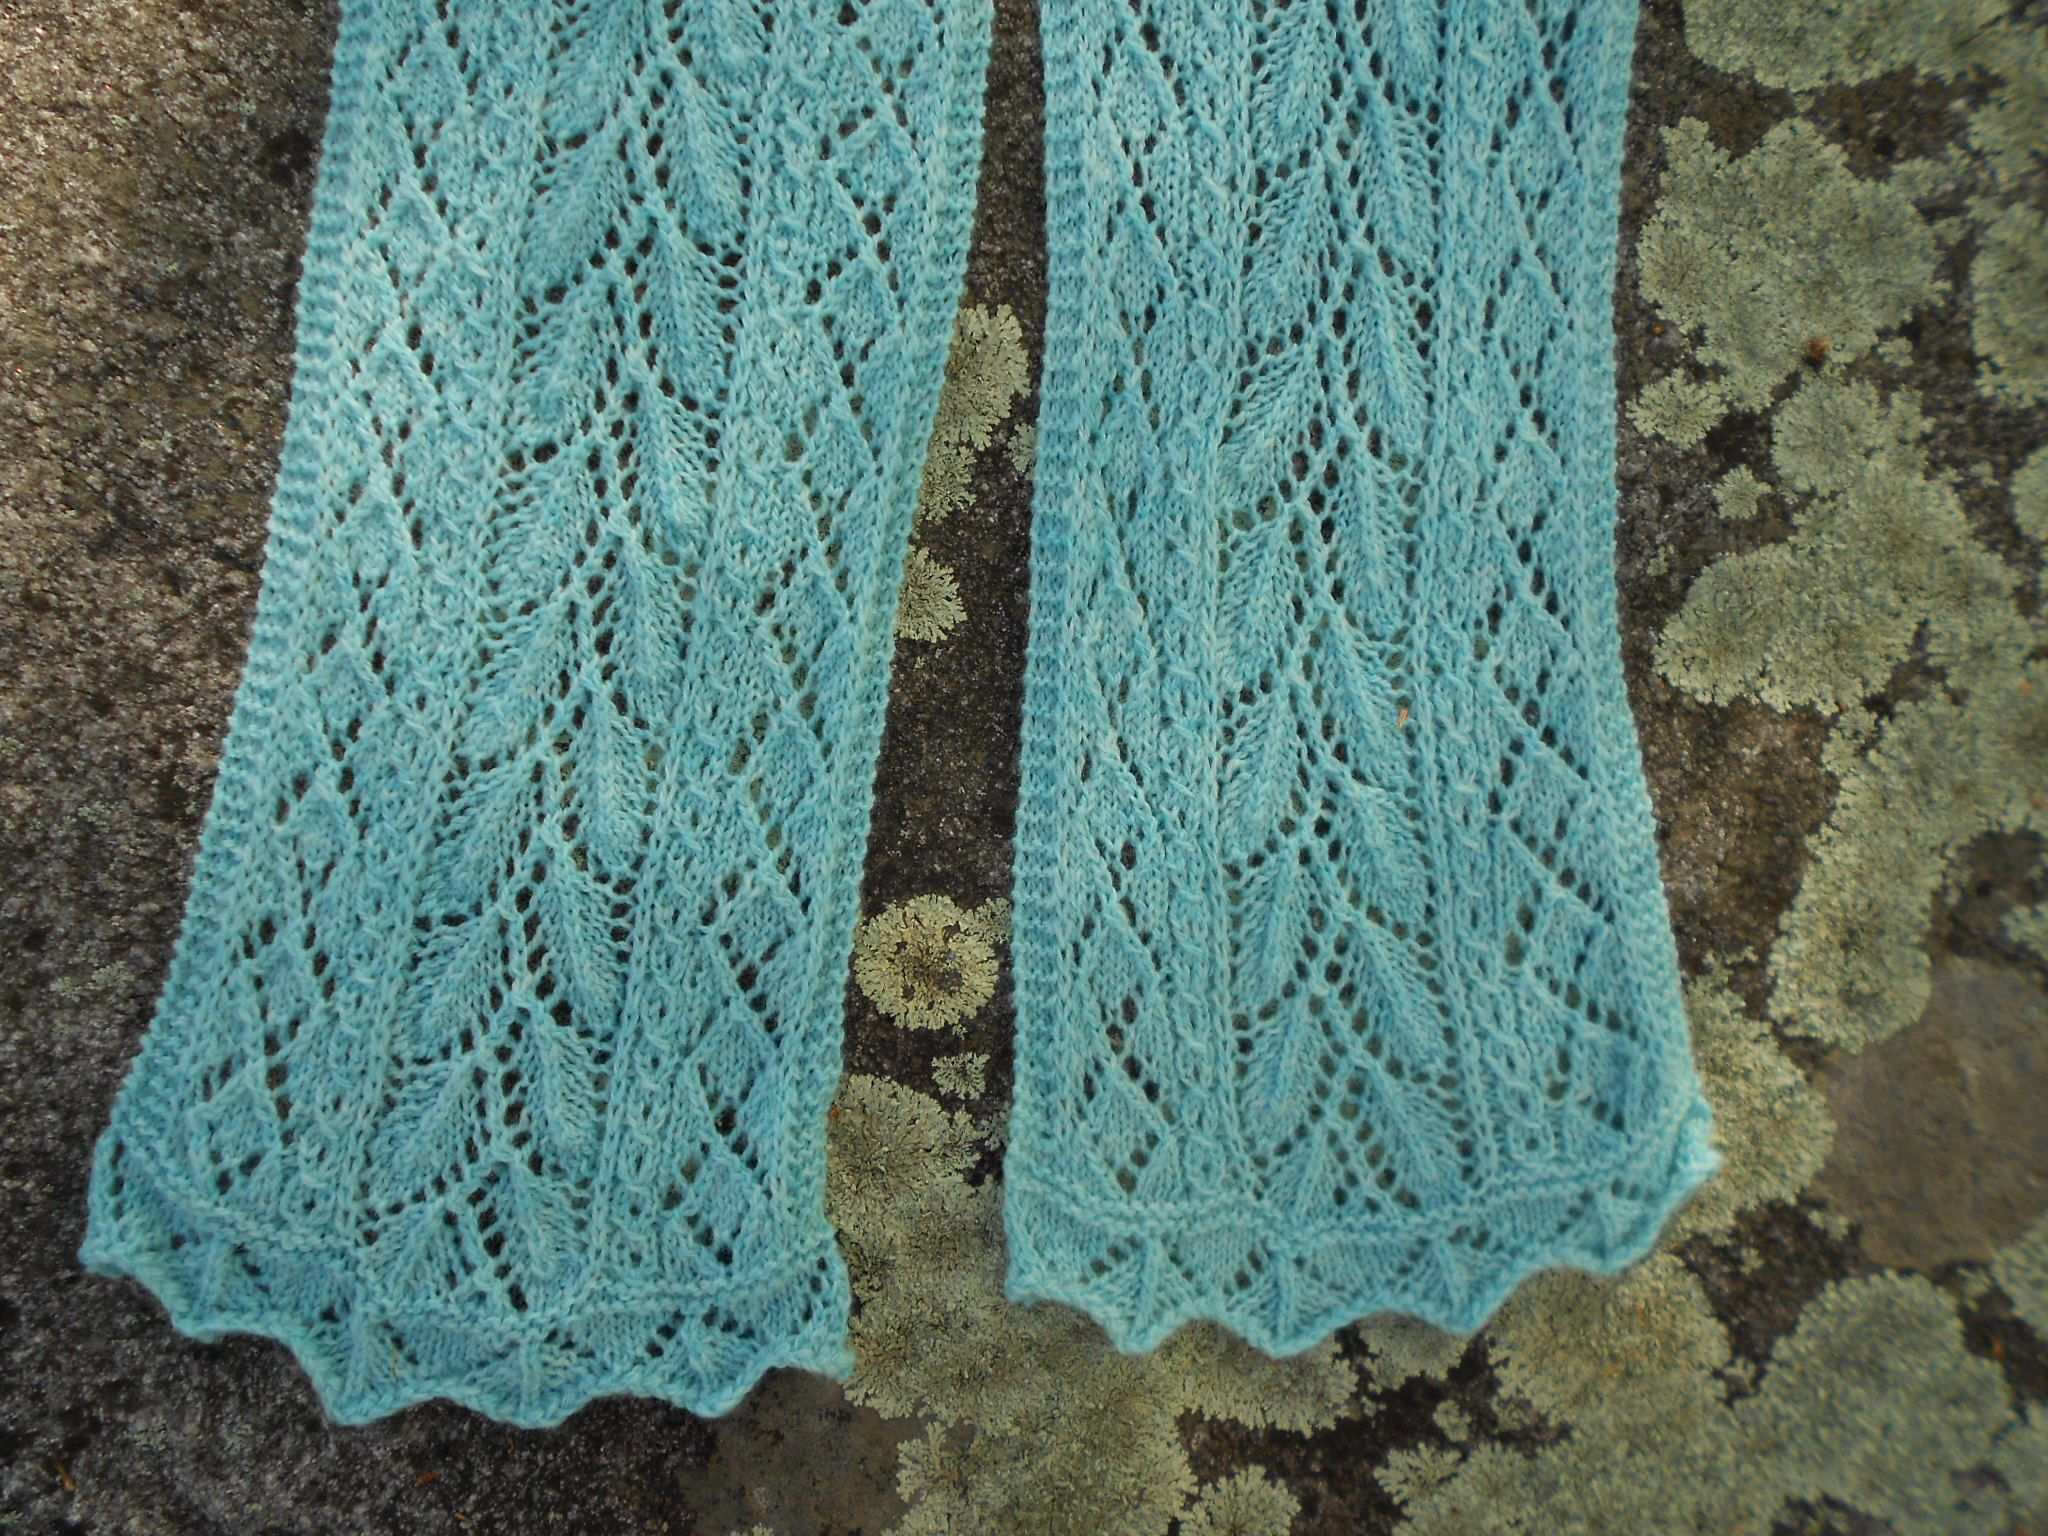 Mint Lace Scarf Pattern - Knitting Patterns and Crochet Patterns from KnitPic...